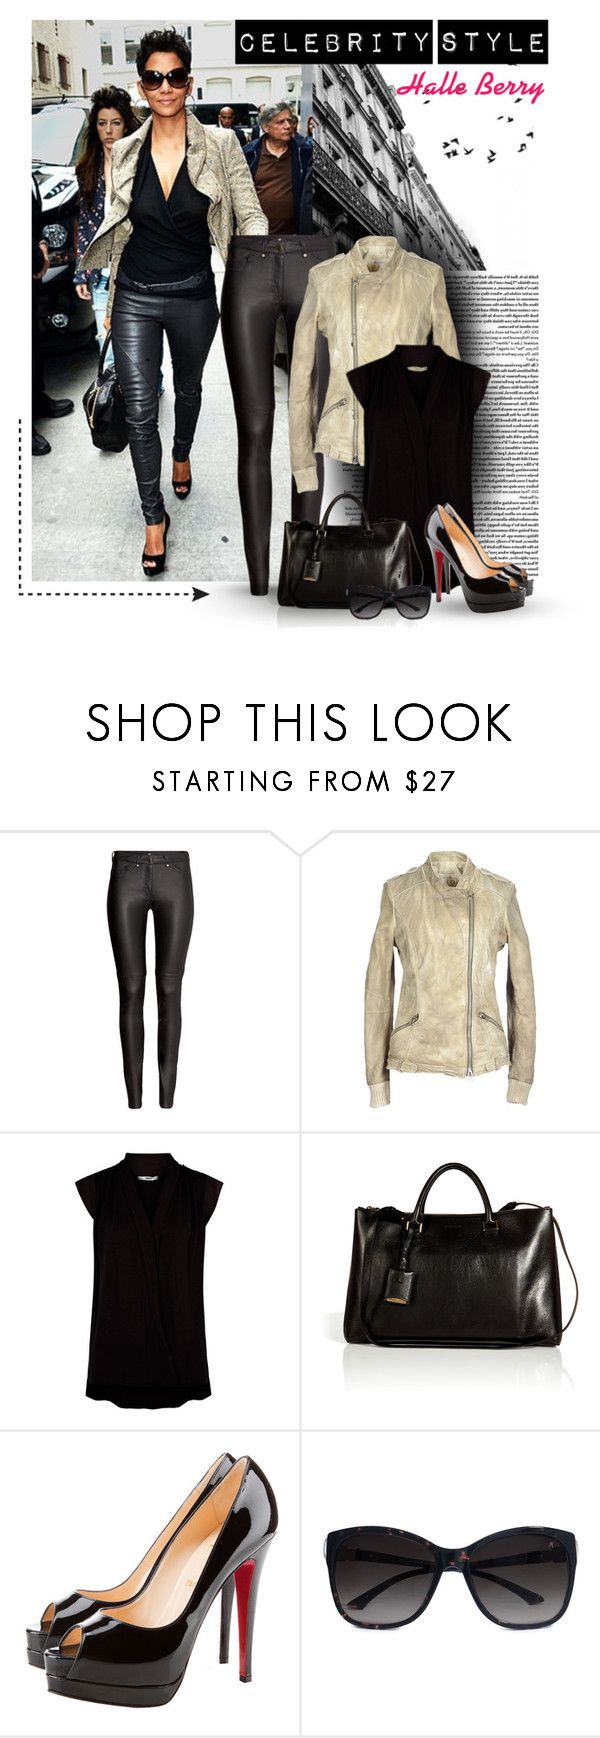 """""""Celebrity Style-Halle Berry"""" by uniqueimage ❤ liked on Polyvore featuring Été Swim, H&M, VINTAGE DE LUXE, Jil Sander, Christian Louboutin and GUESS by Marciano"""